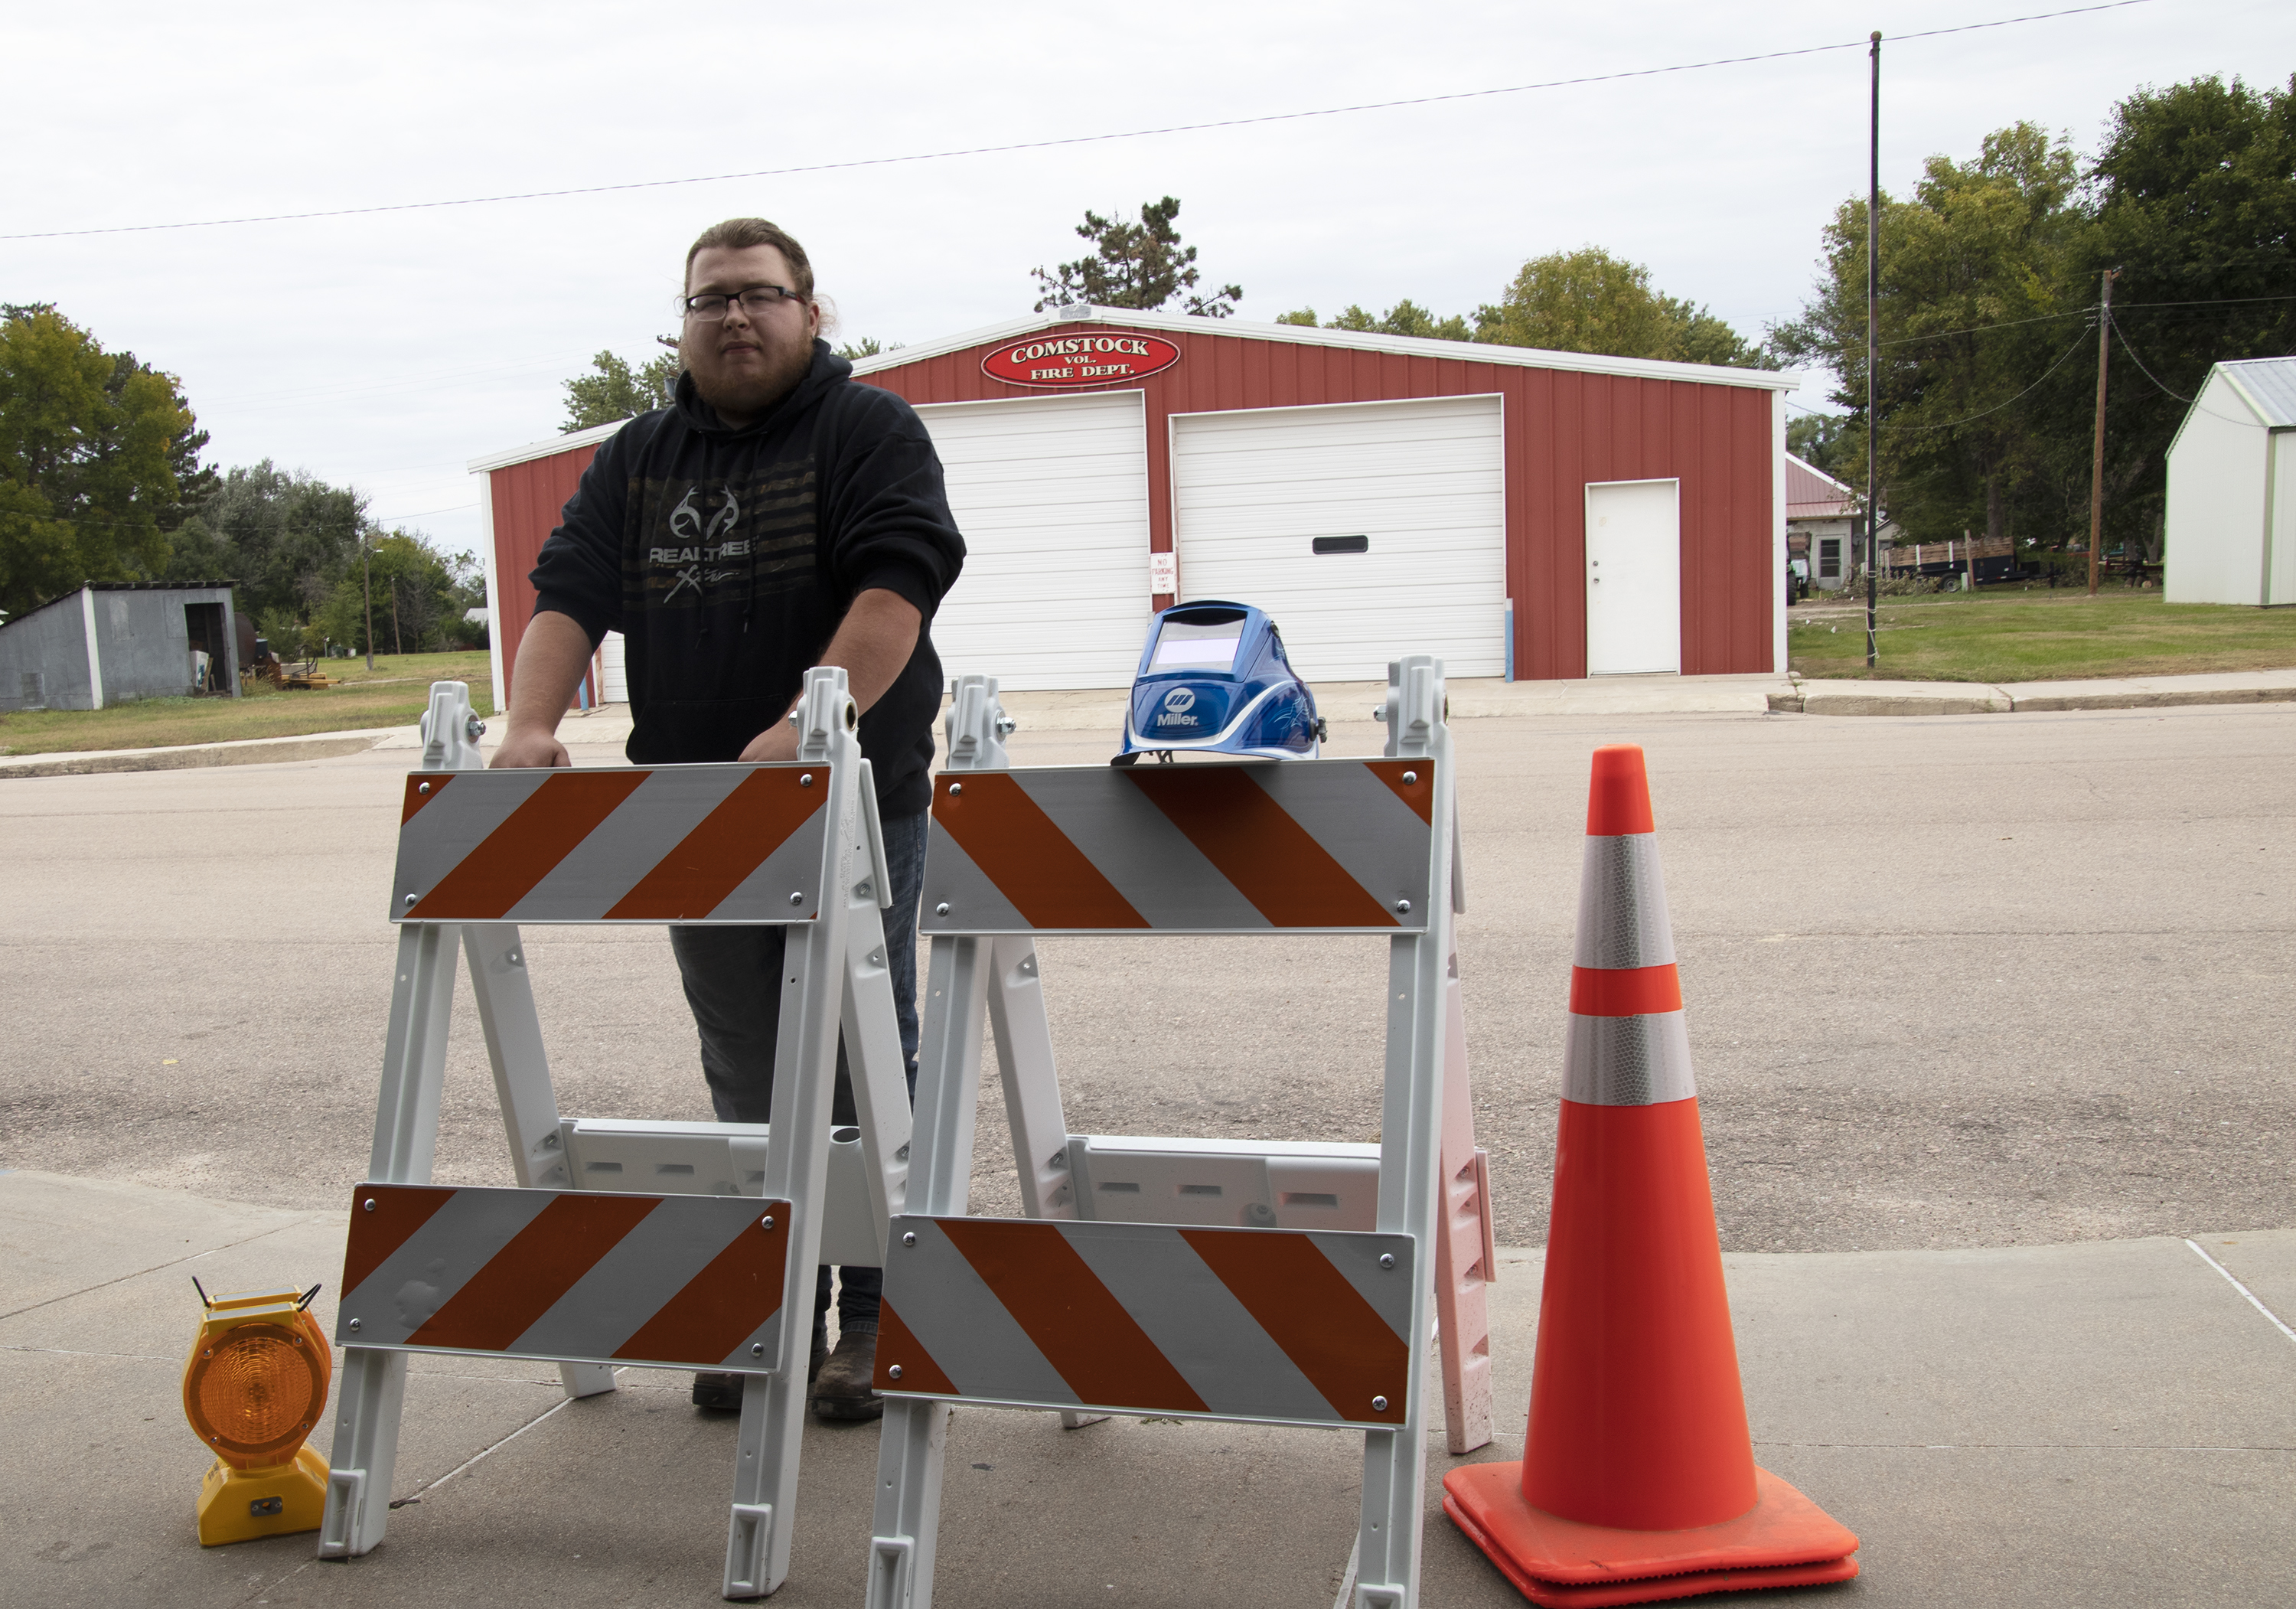 Comstock adds safety equipment